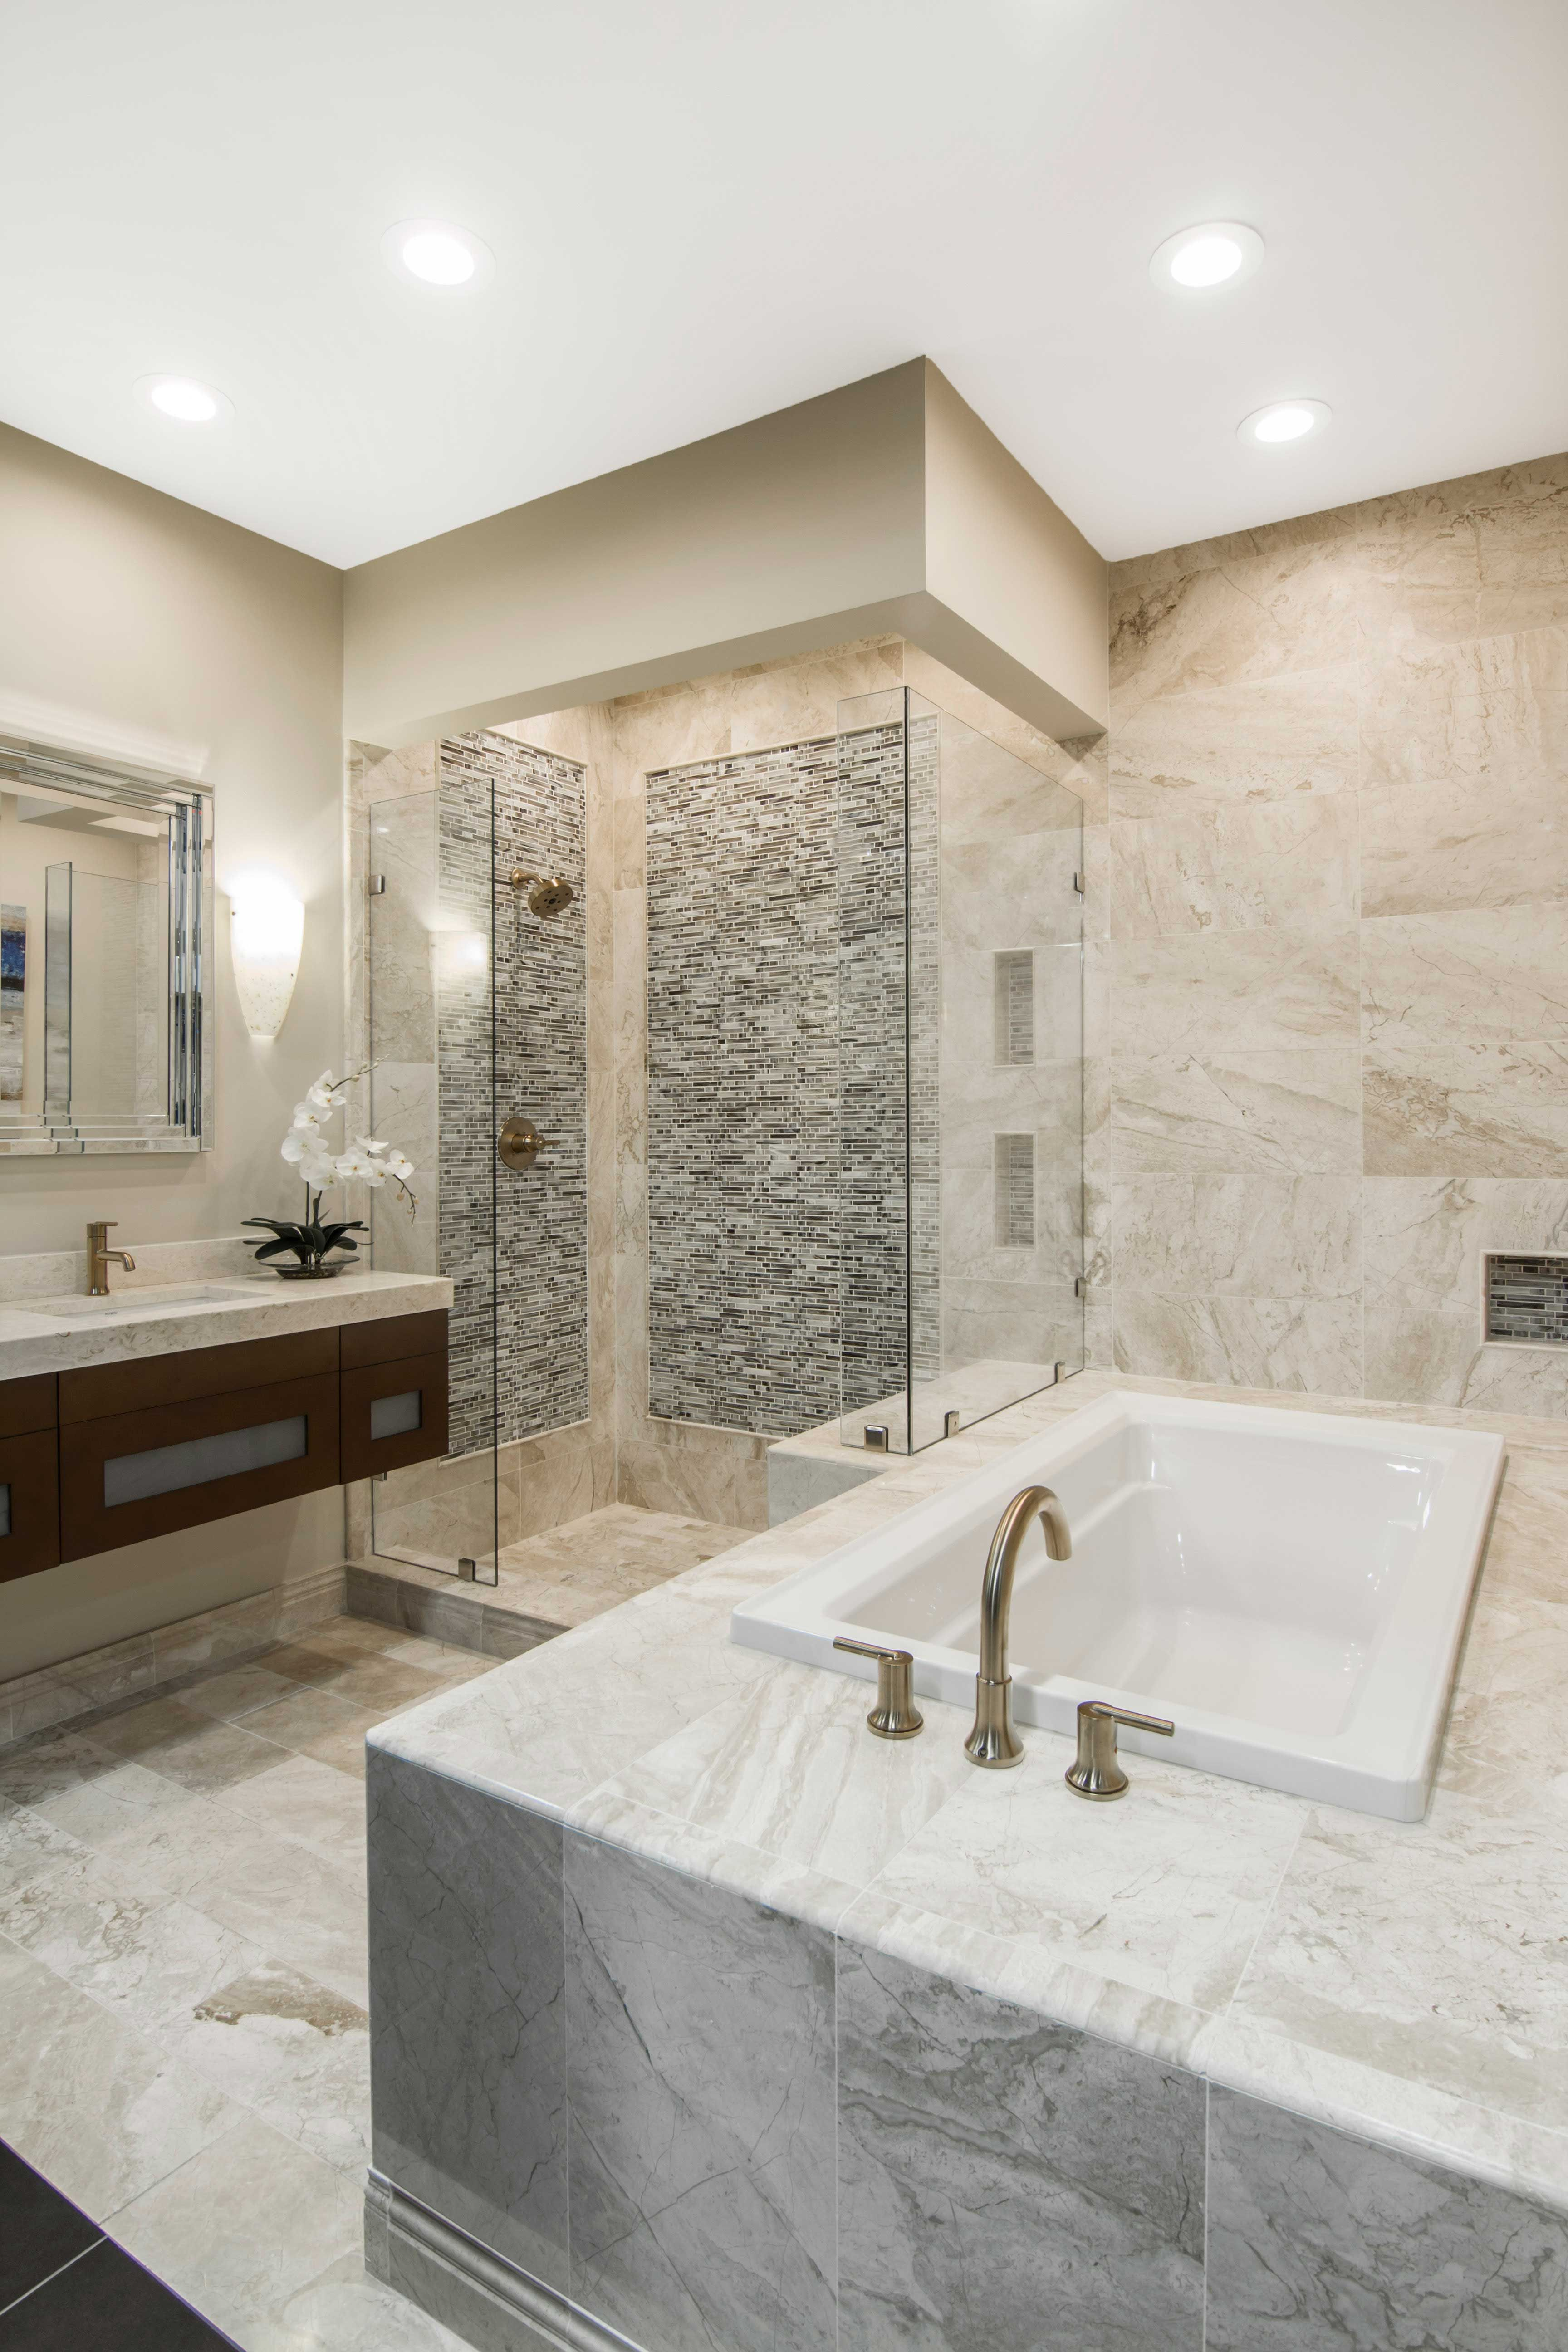 Luxurious Bathroom Tile Queen Beige Polished Marble Wall